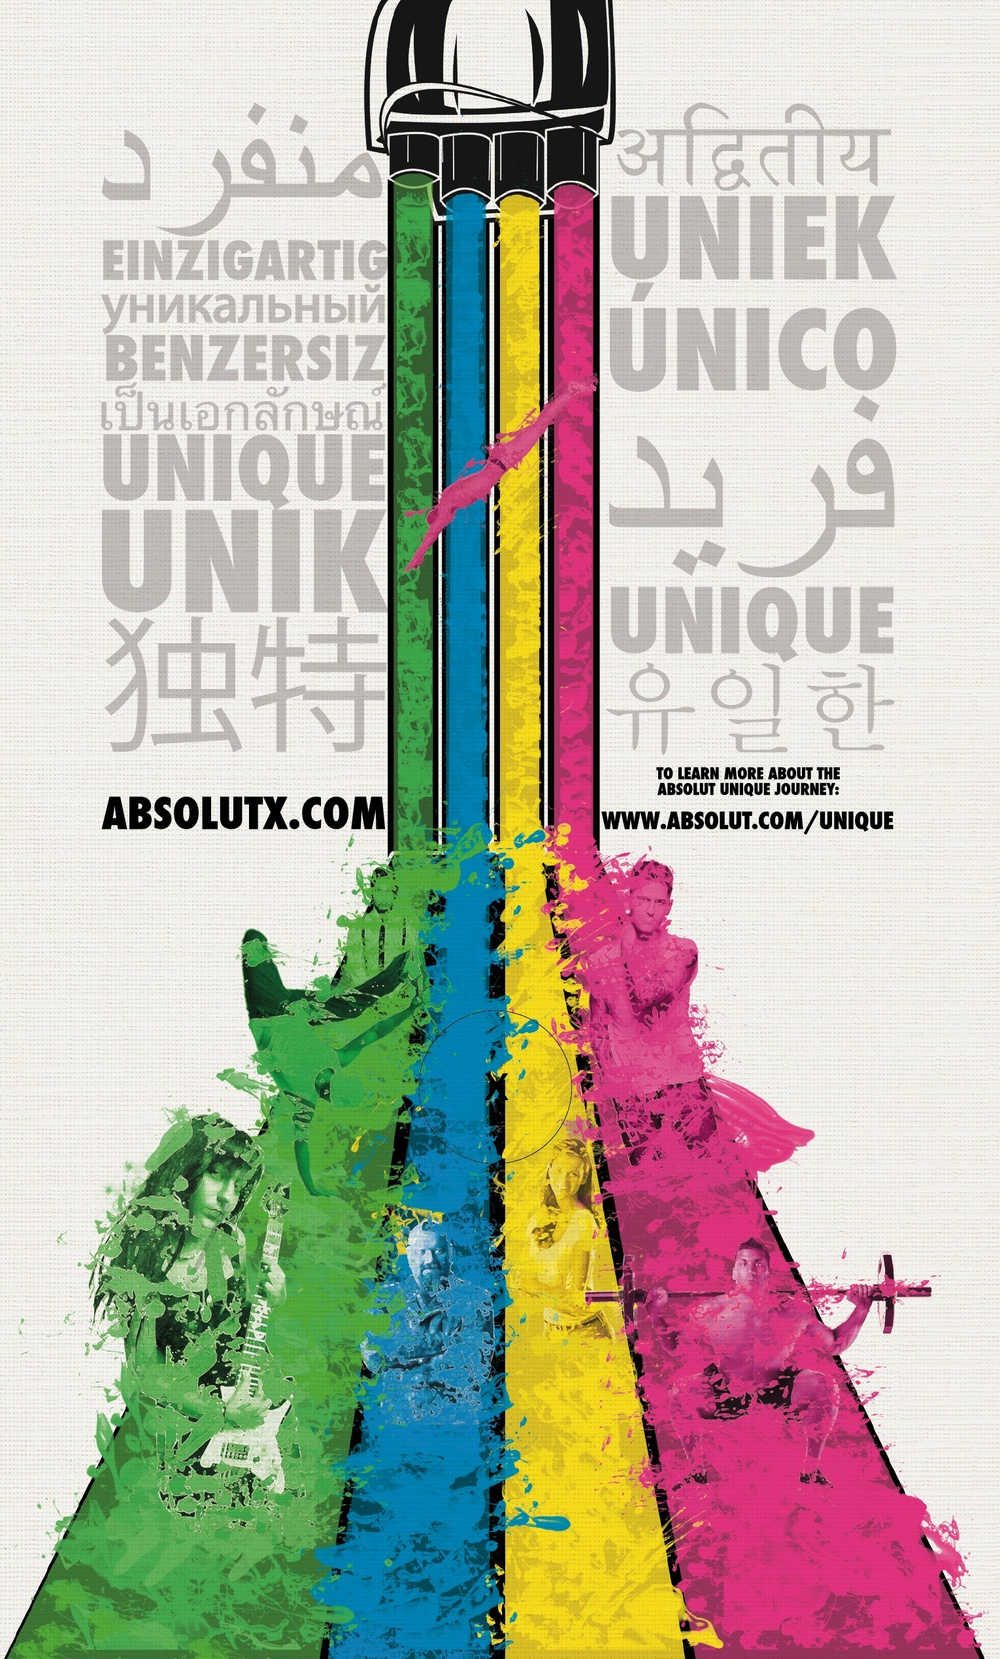 absolut mock up 5 COLOR-01.jpg